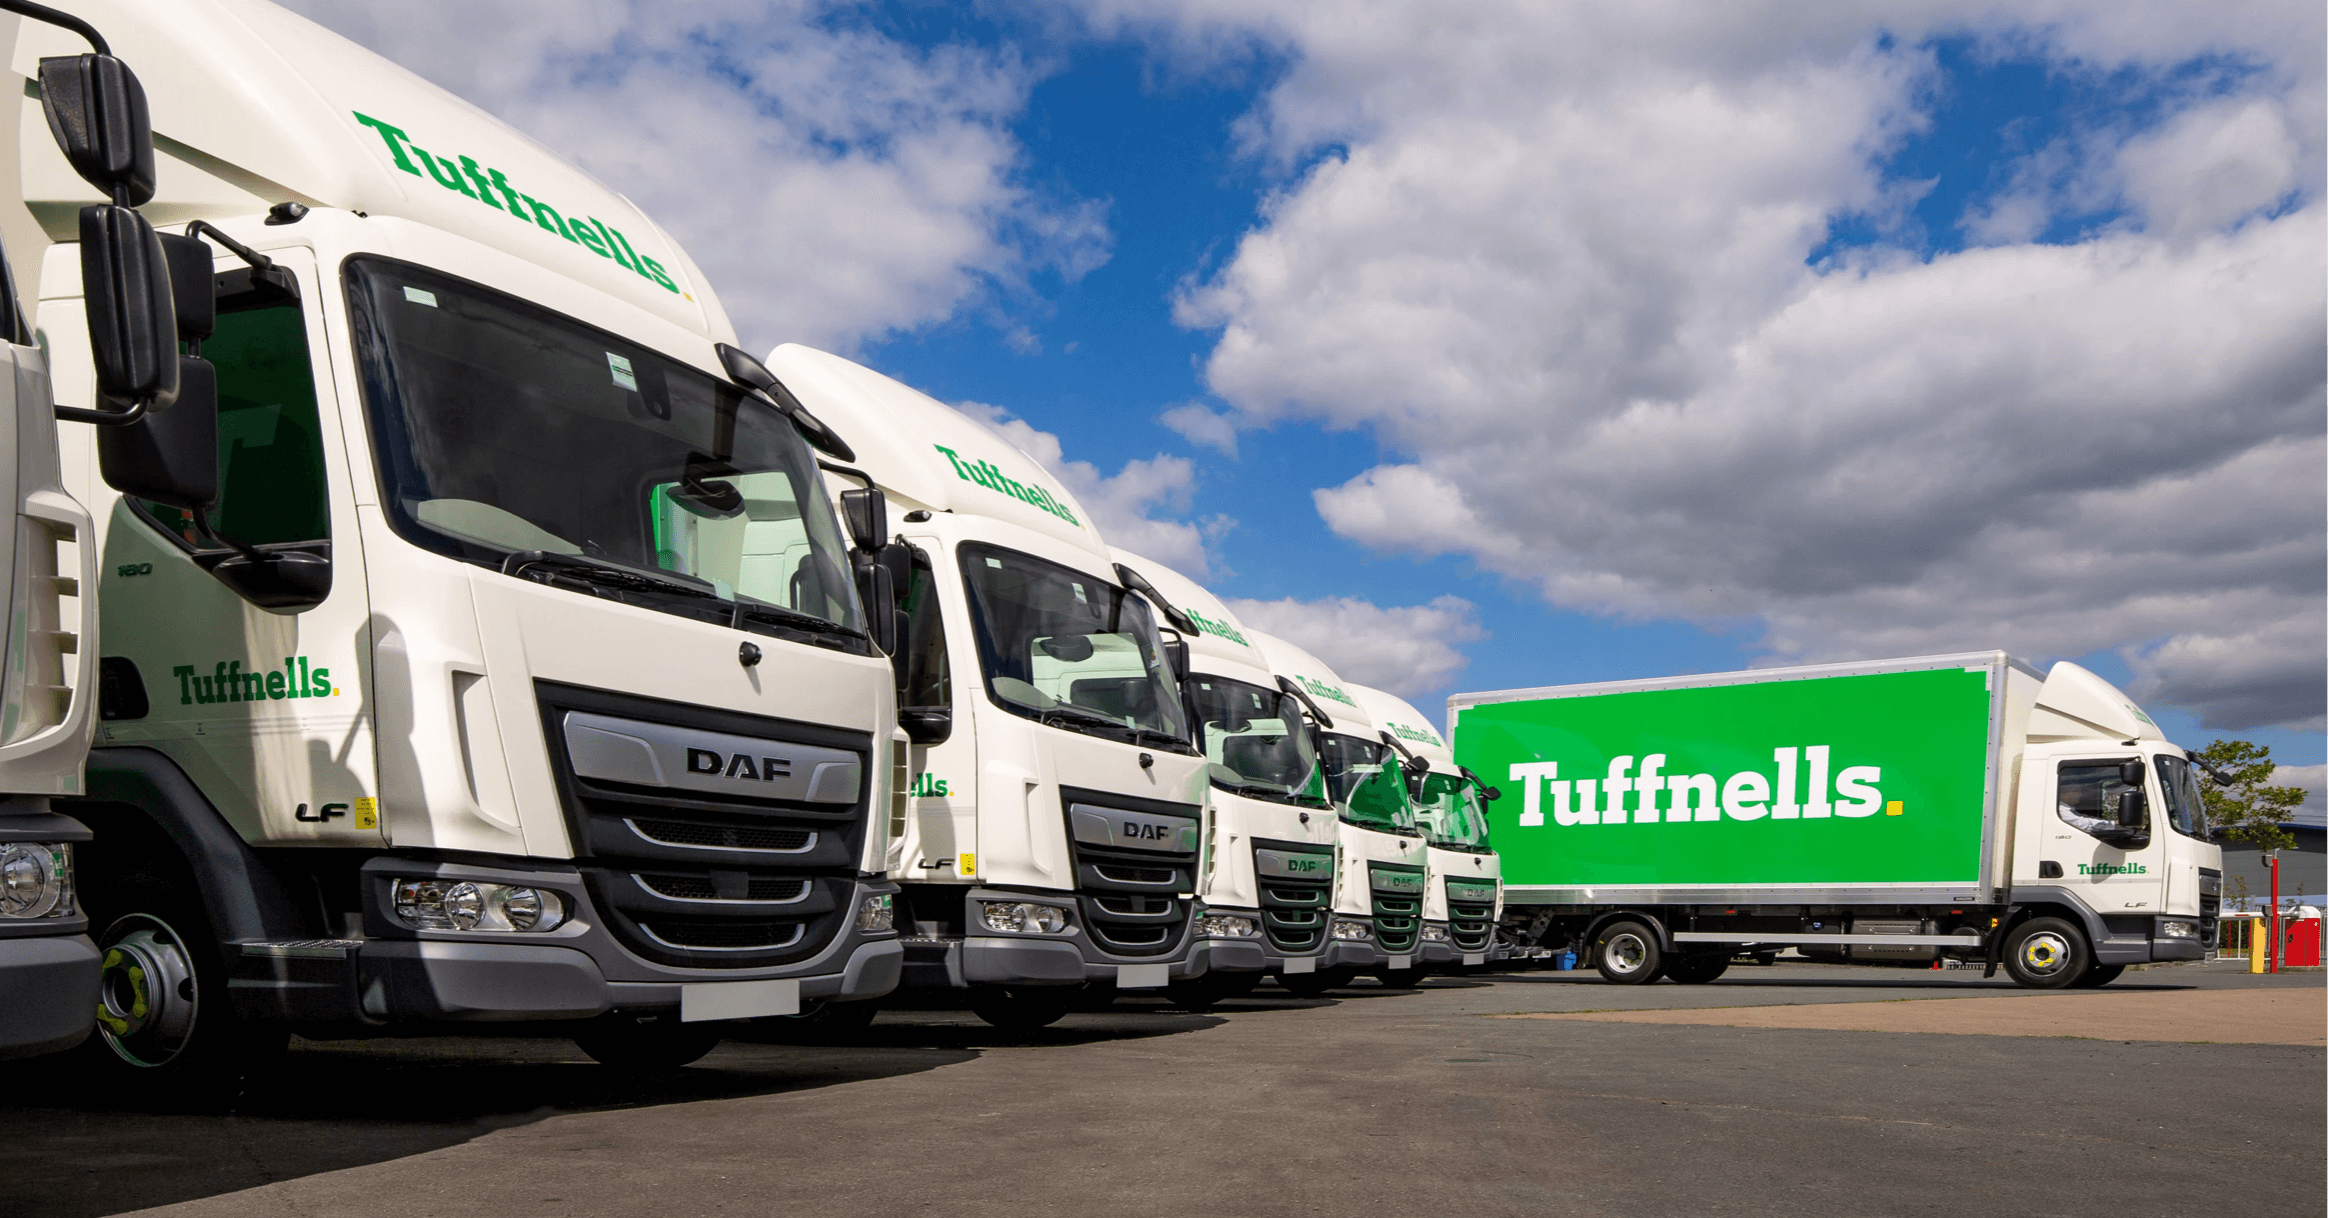 [News] Tuffnells Adopts Flexible Rental And Contract Hire With Enterprise For Its Big Green Parcel Machine